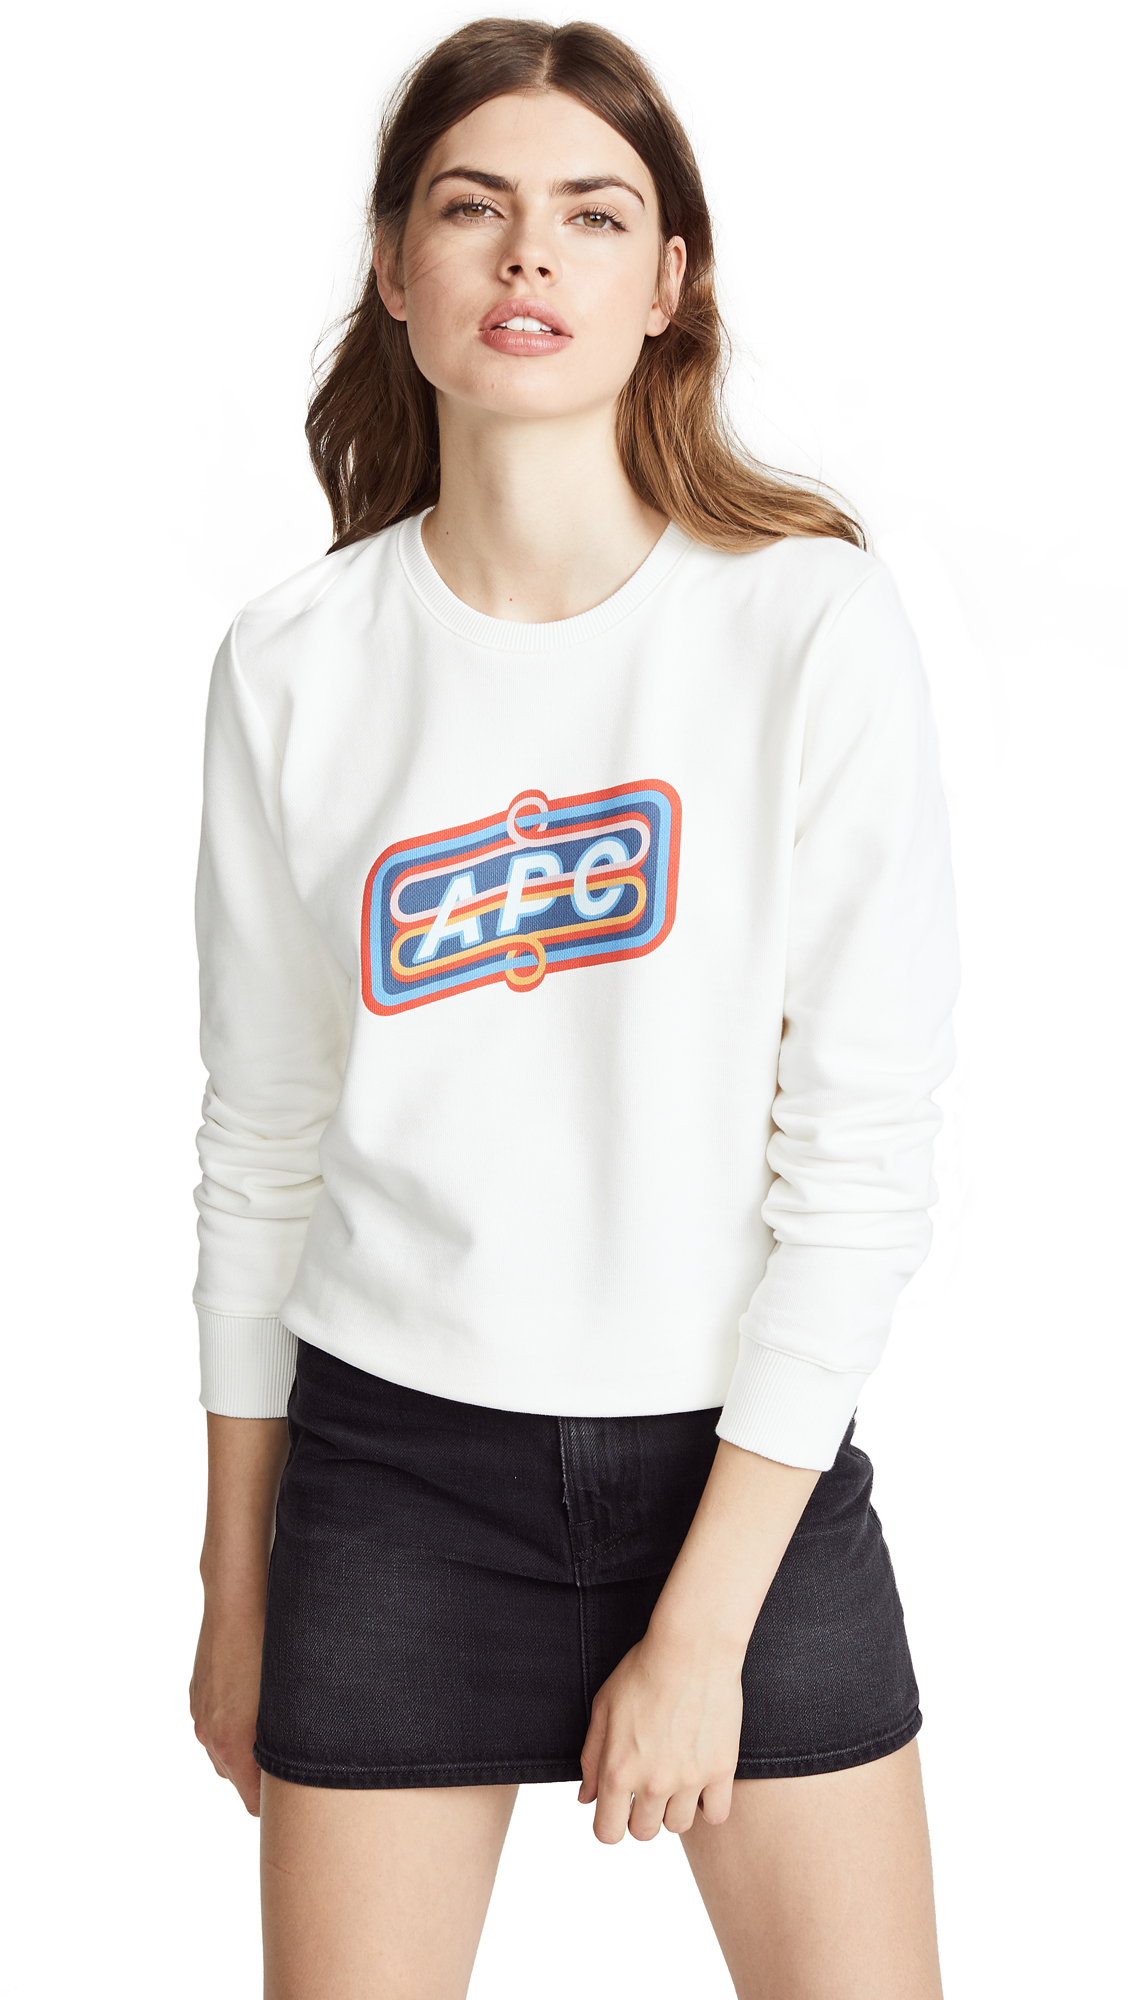 A.P.C. Norman Sweatshirt In Blanc